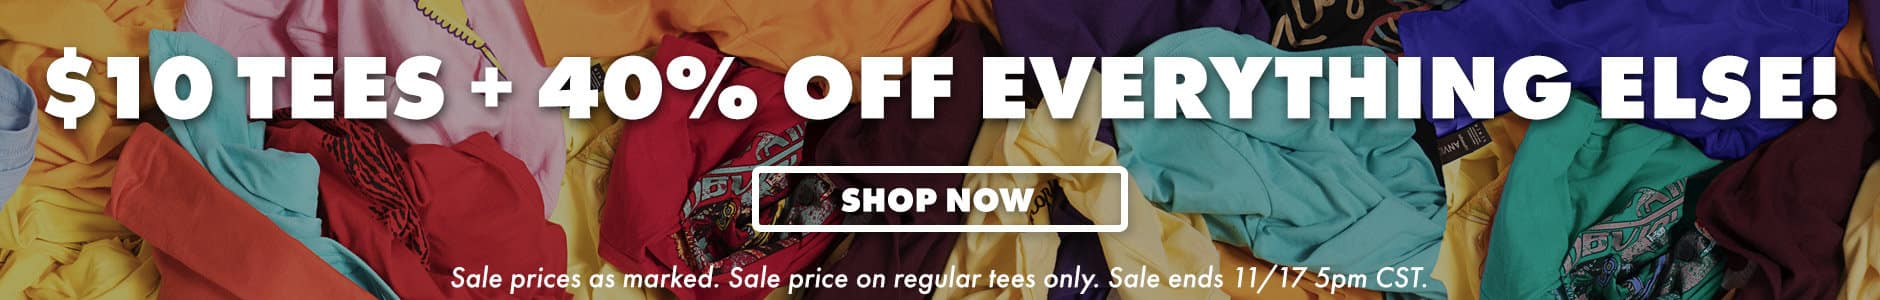 $10 Tees + 40% off everything else! Shop now. Sale prices as marked. Sale price on regular tees only. Sale ends 11/17 5PM CST.